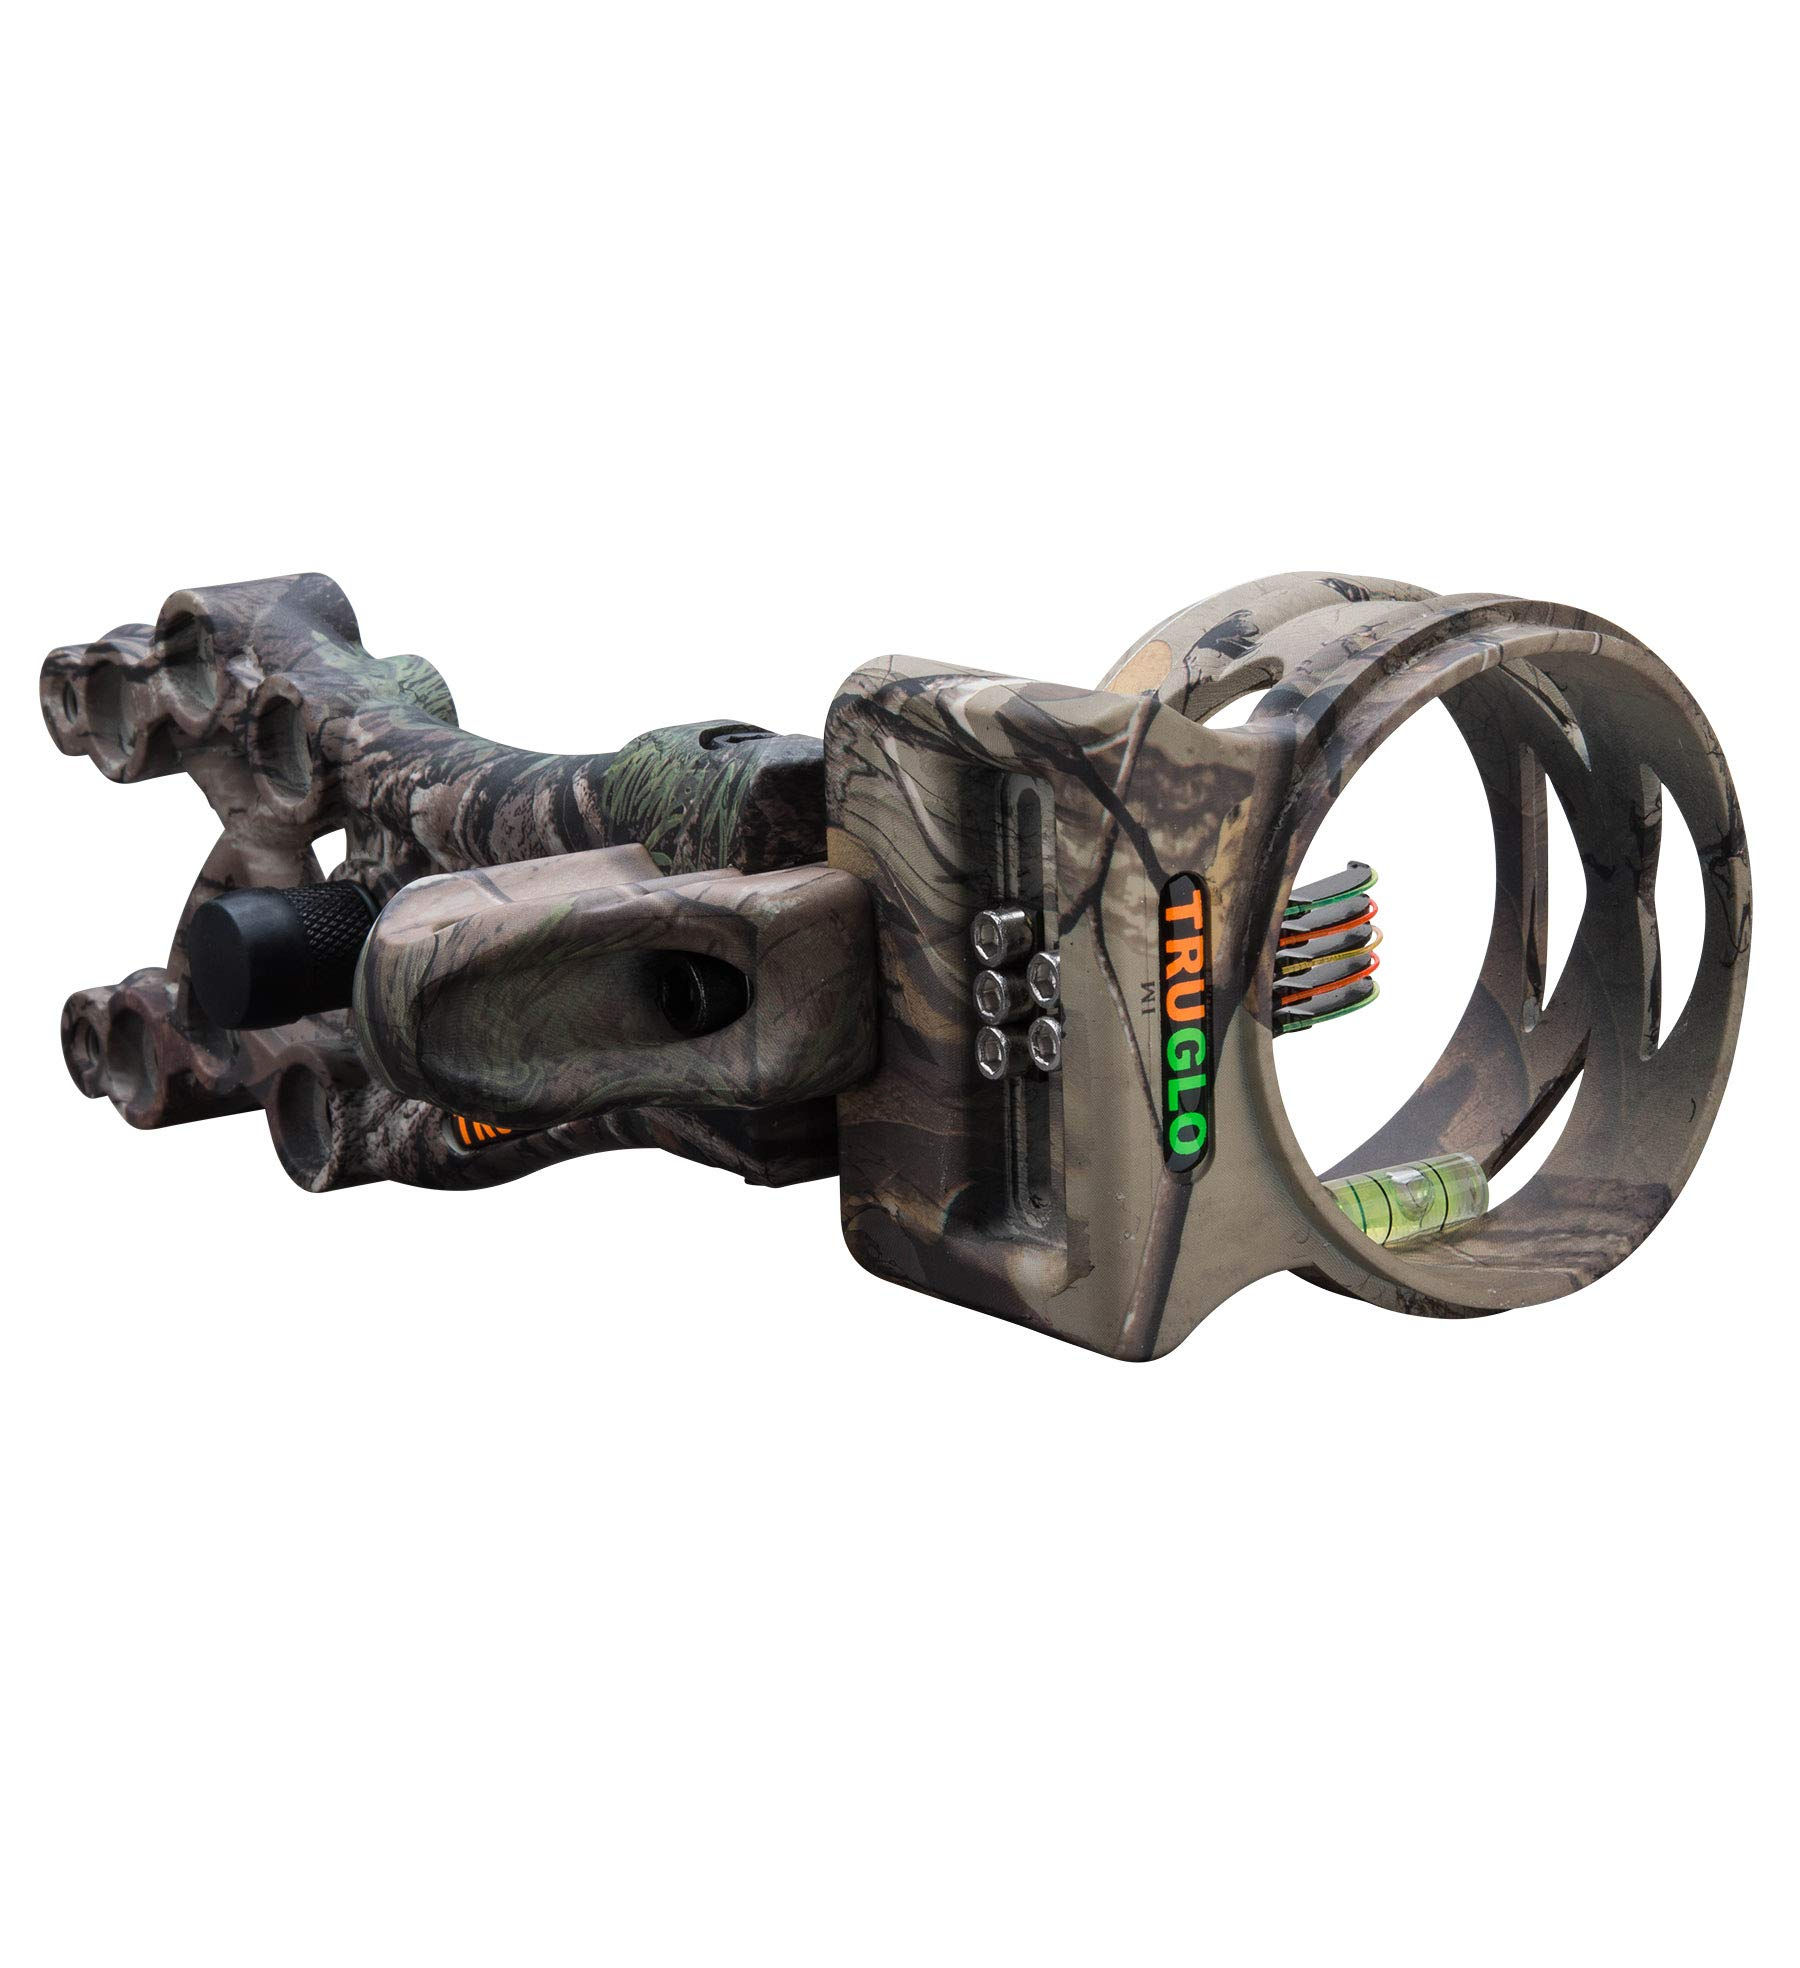 TRUGLO Carbon XS Xtreme Ultra-Lightweight Carbon-Composite Bow Sight, Realtree Xtra Camo by TRUGLO